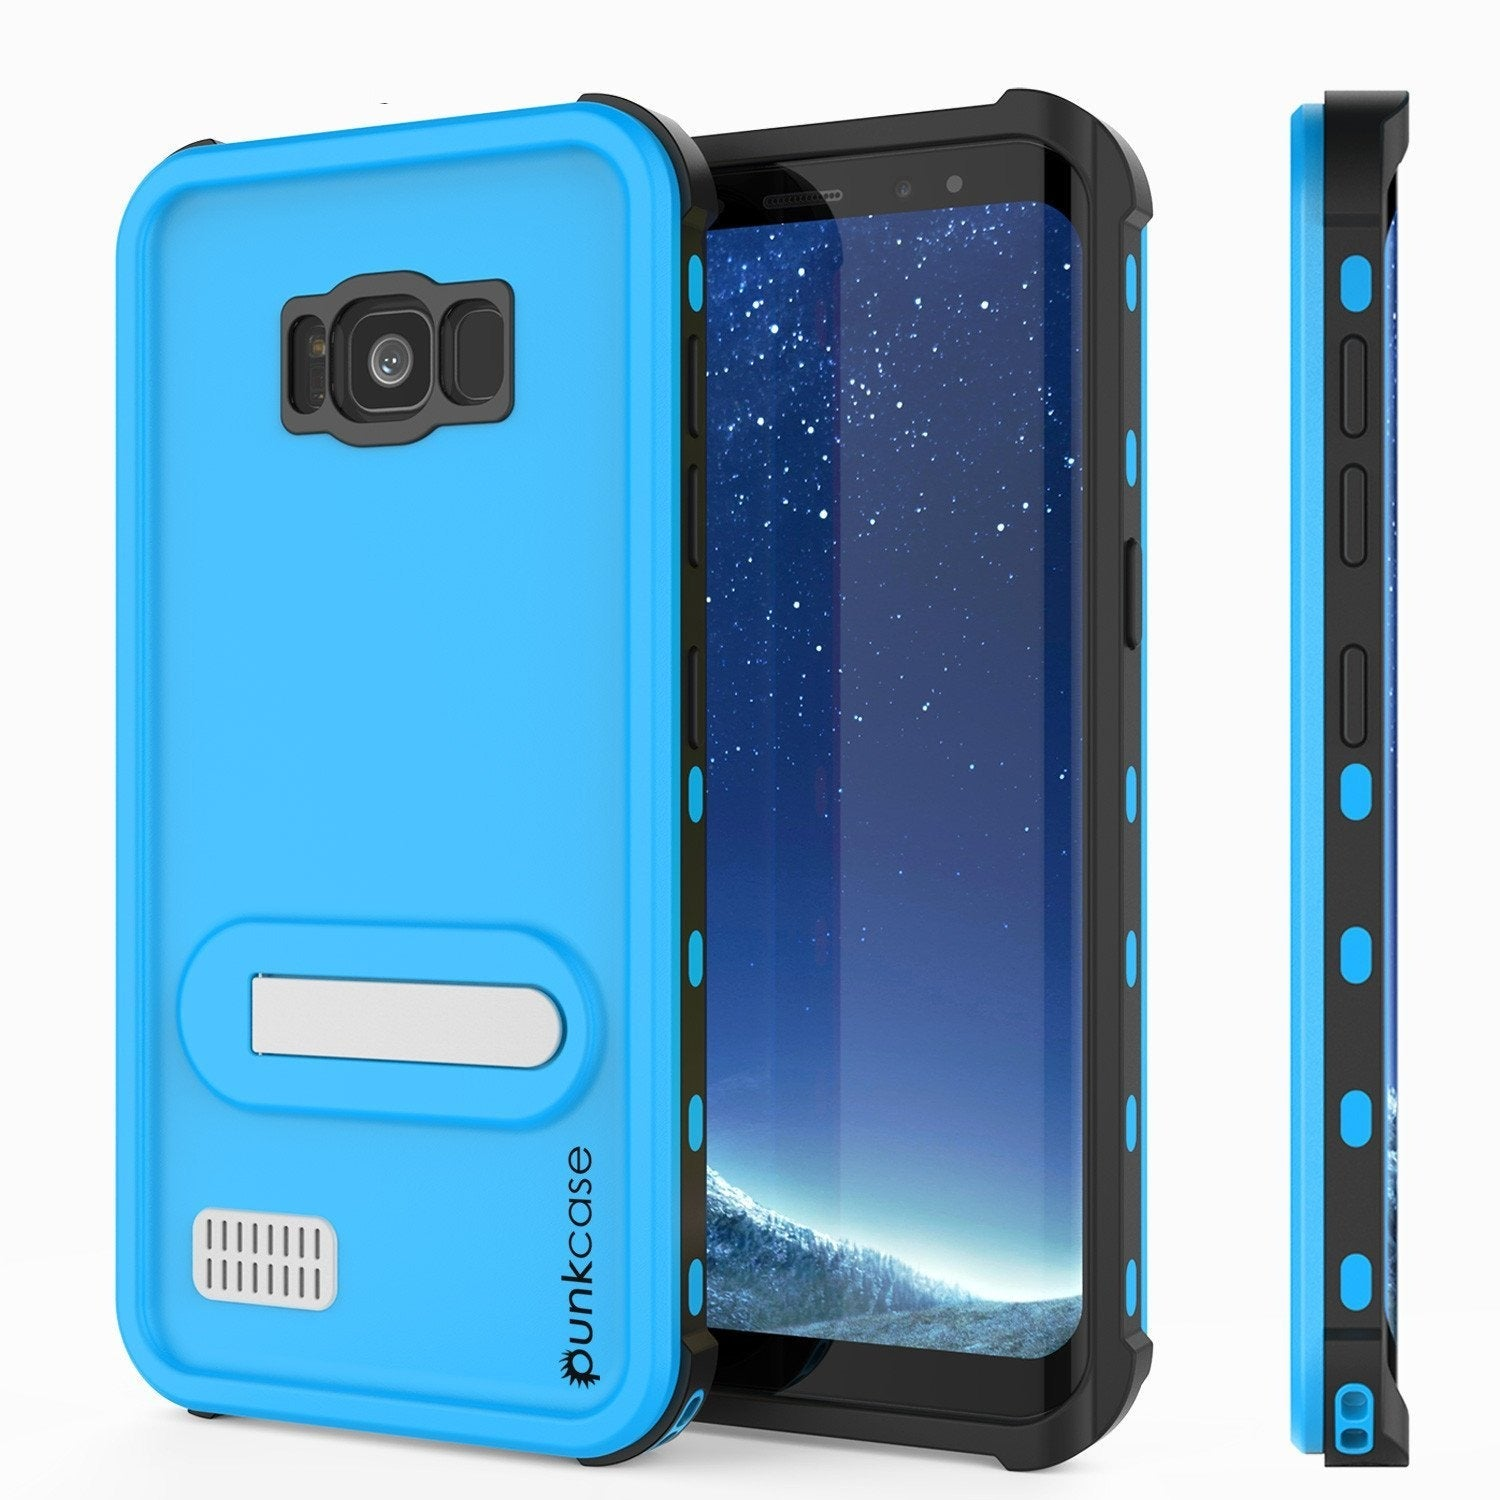 Galaxy S8 Plus Water/Shock Proof Screen Protector Case [Light Blue]